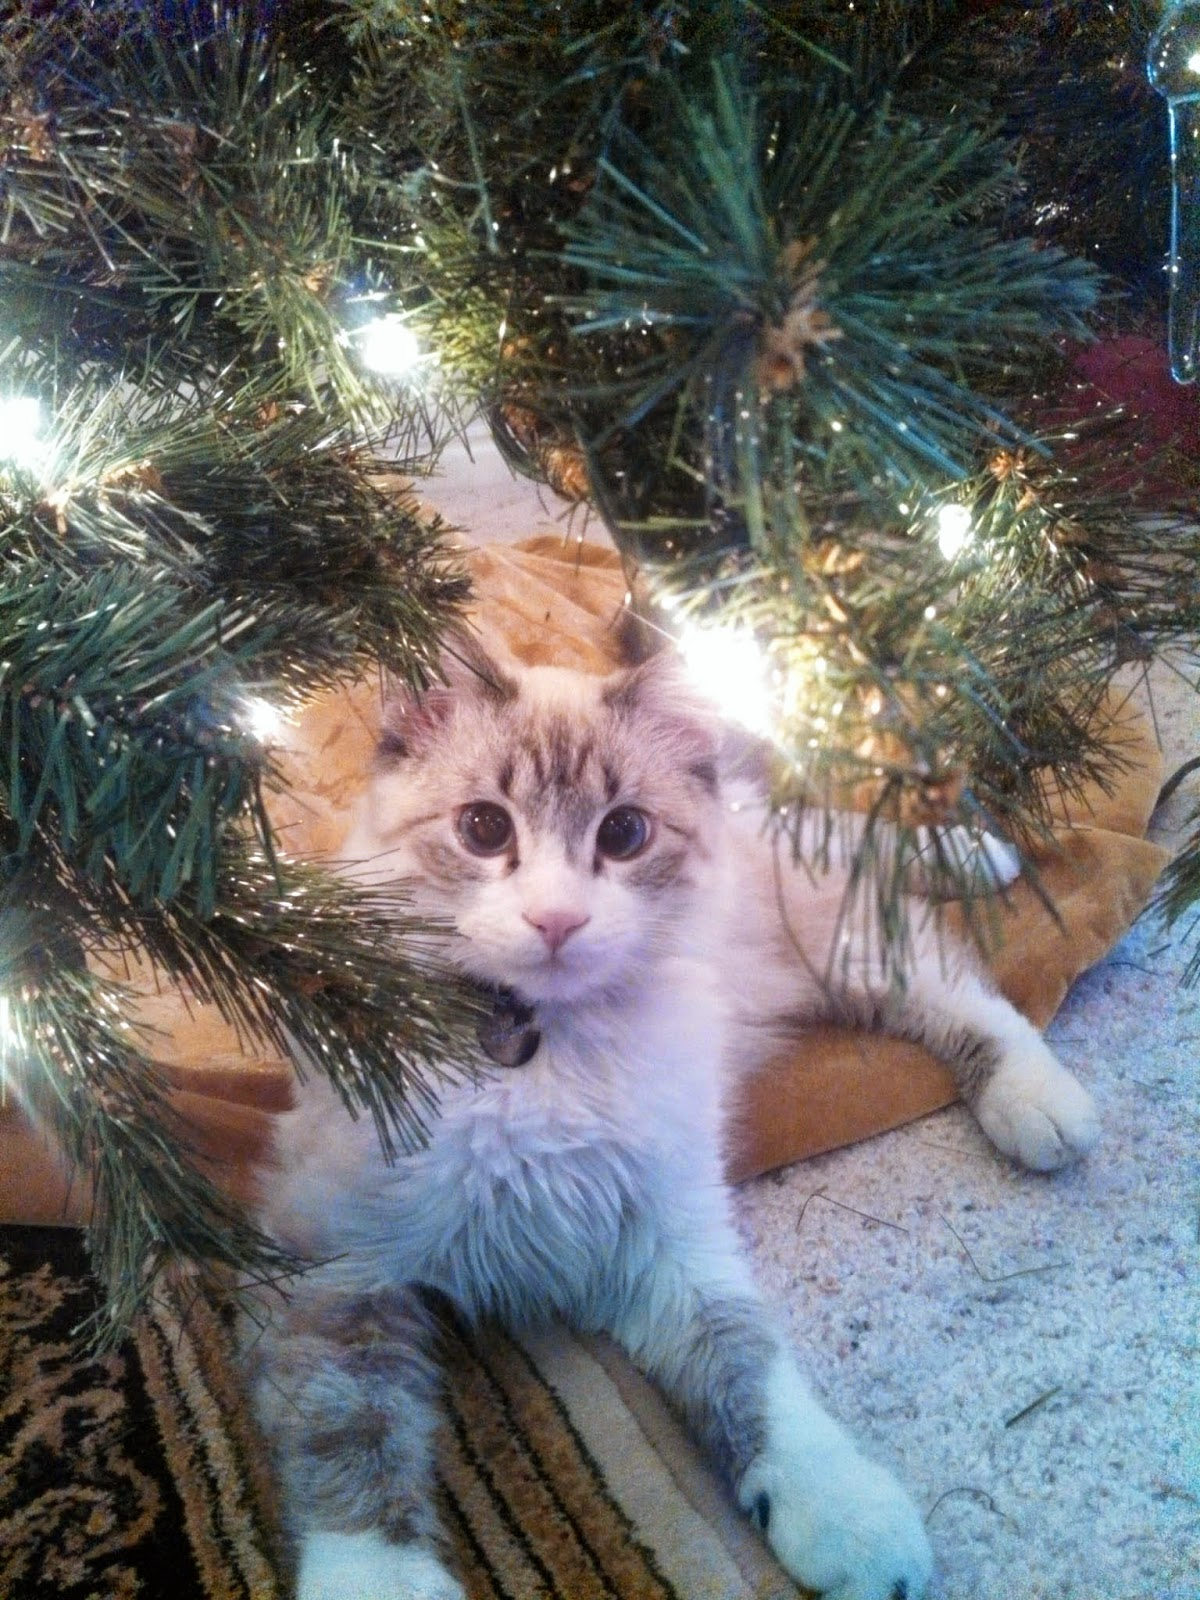 Olaf Christmas Trees.Completely Indie The Christmas Tree The Olaf Cat S Nemeses